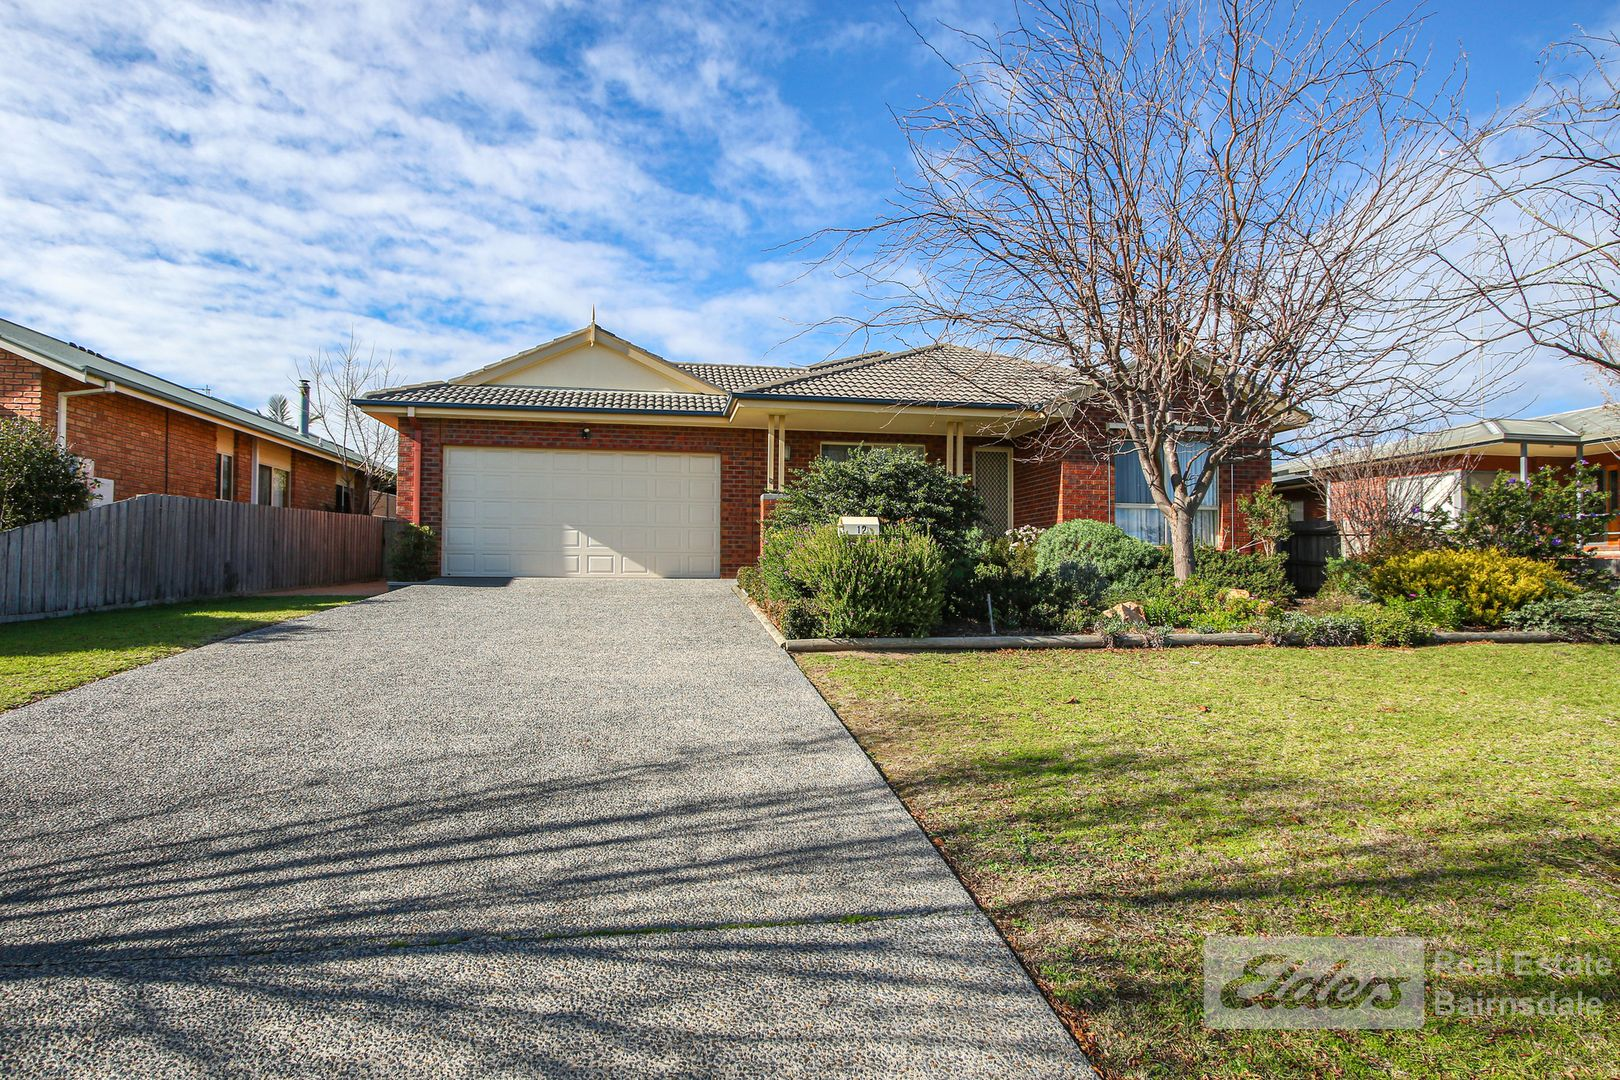 12 Birchwood Court, Bairnsdale VIC 3875, Image 1